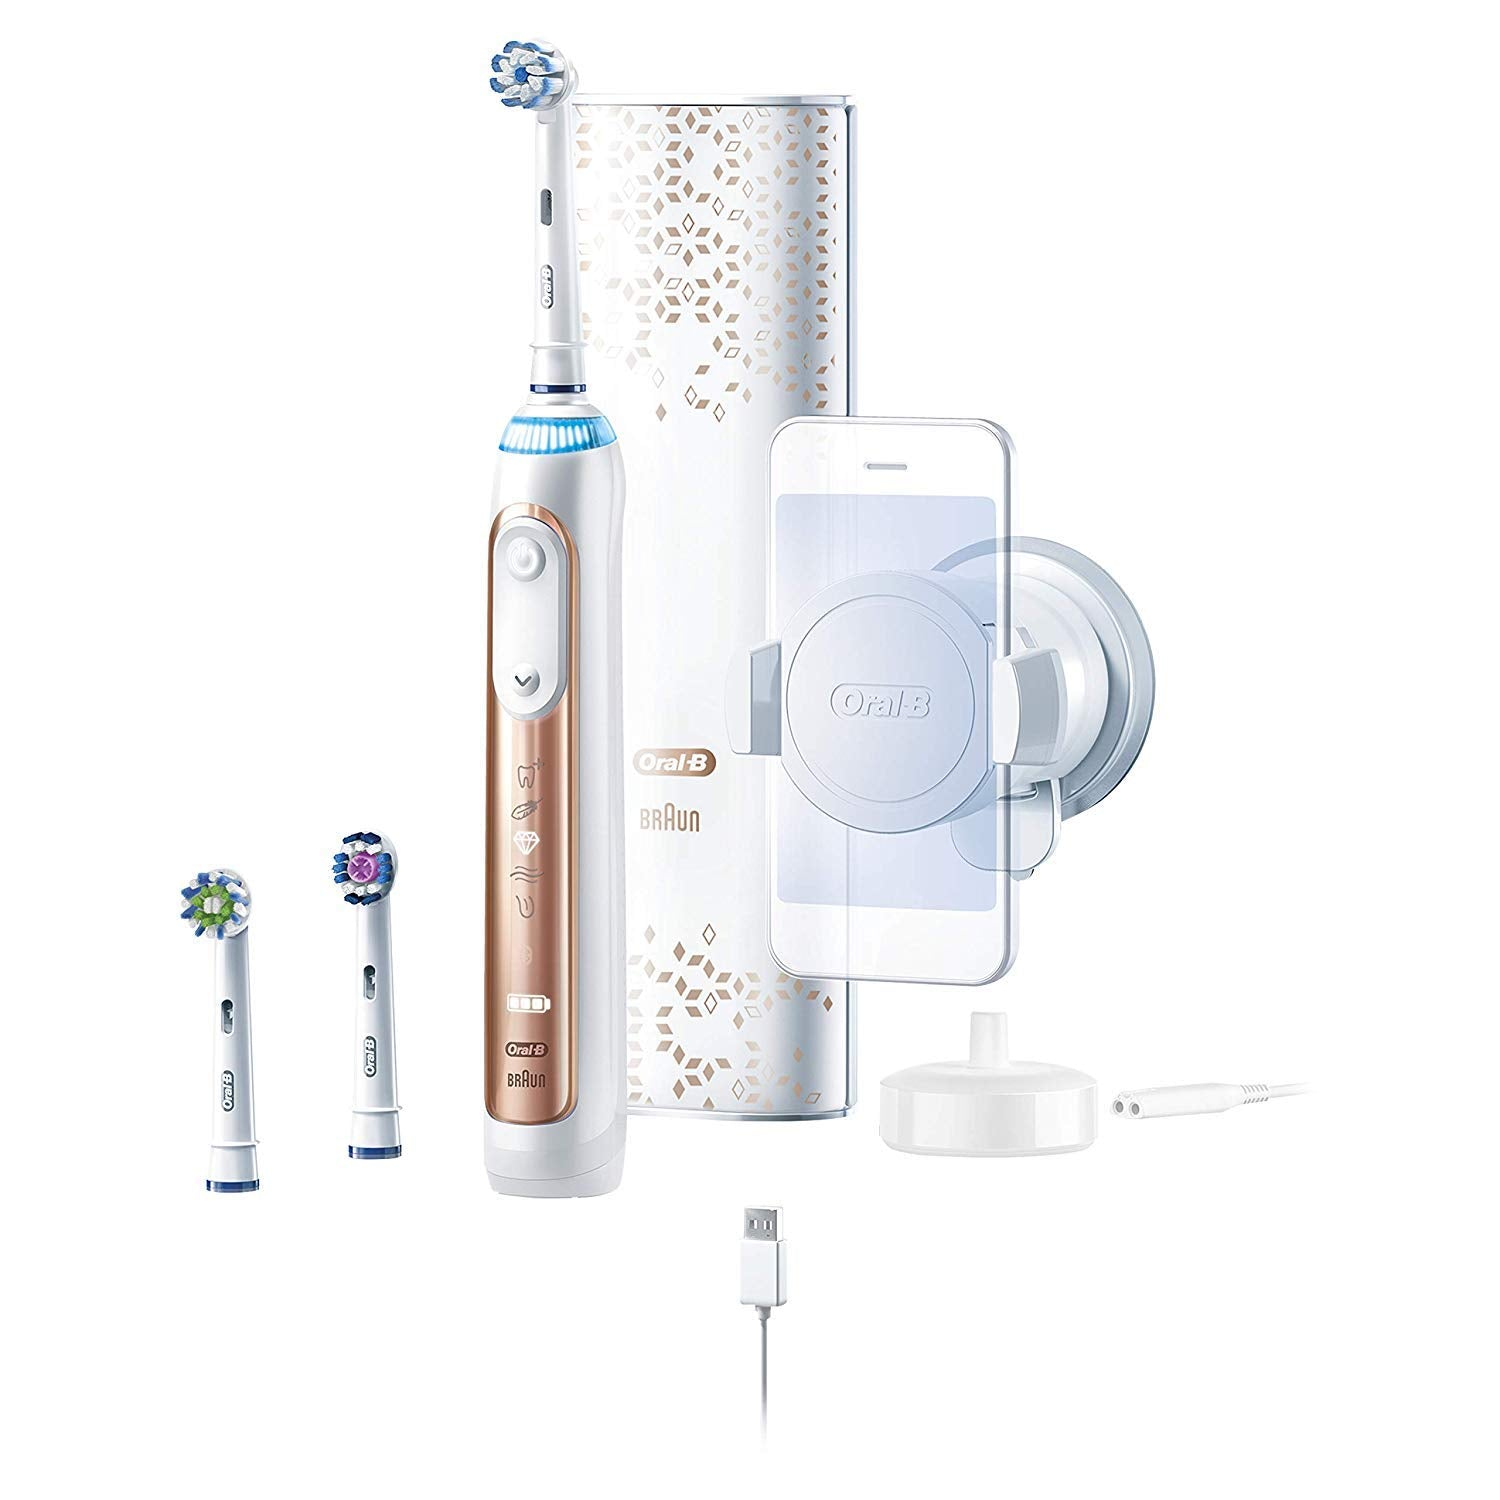 Oral-B 9600 Electric Toothbrush, 3 Brush Heads, Rose Gold